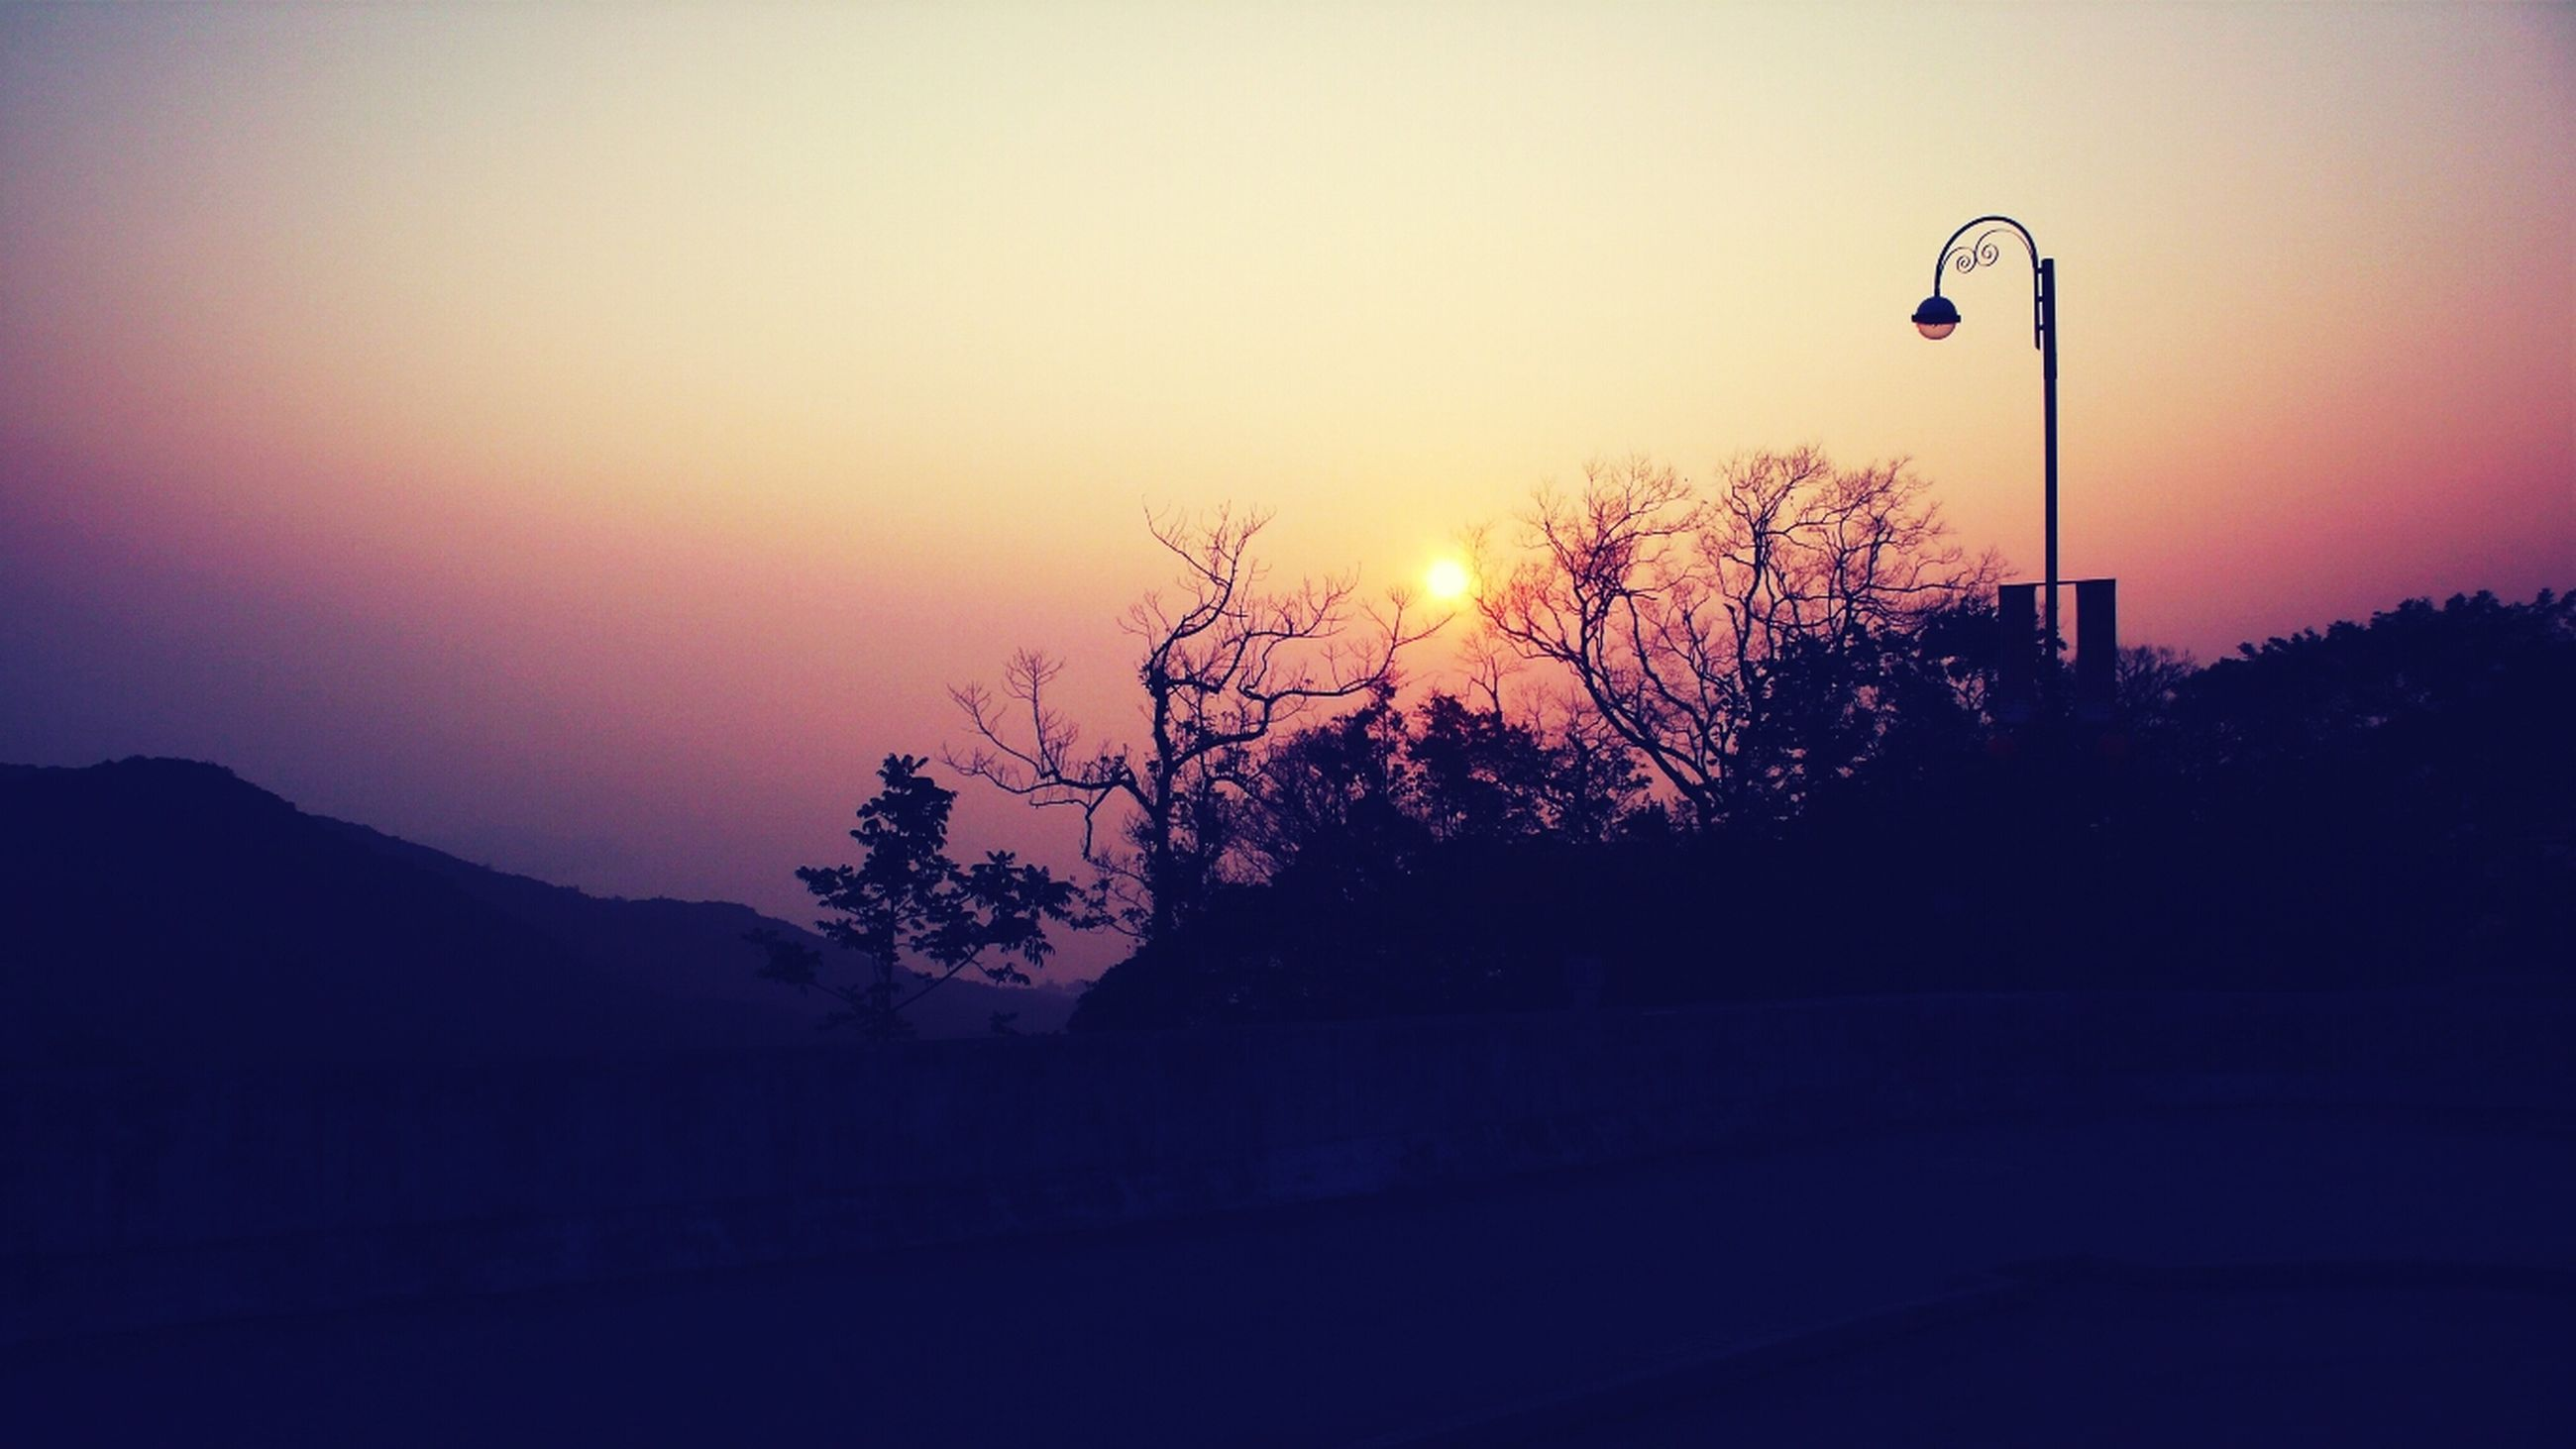 sunset, silhouette, orange color, sun, tree, tranquility, scenics, tranquil scene, clear sky, beauty in nature, sky, nature, copy space, idyllic, landscape, dusk, outdoors, no people, outline, street light